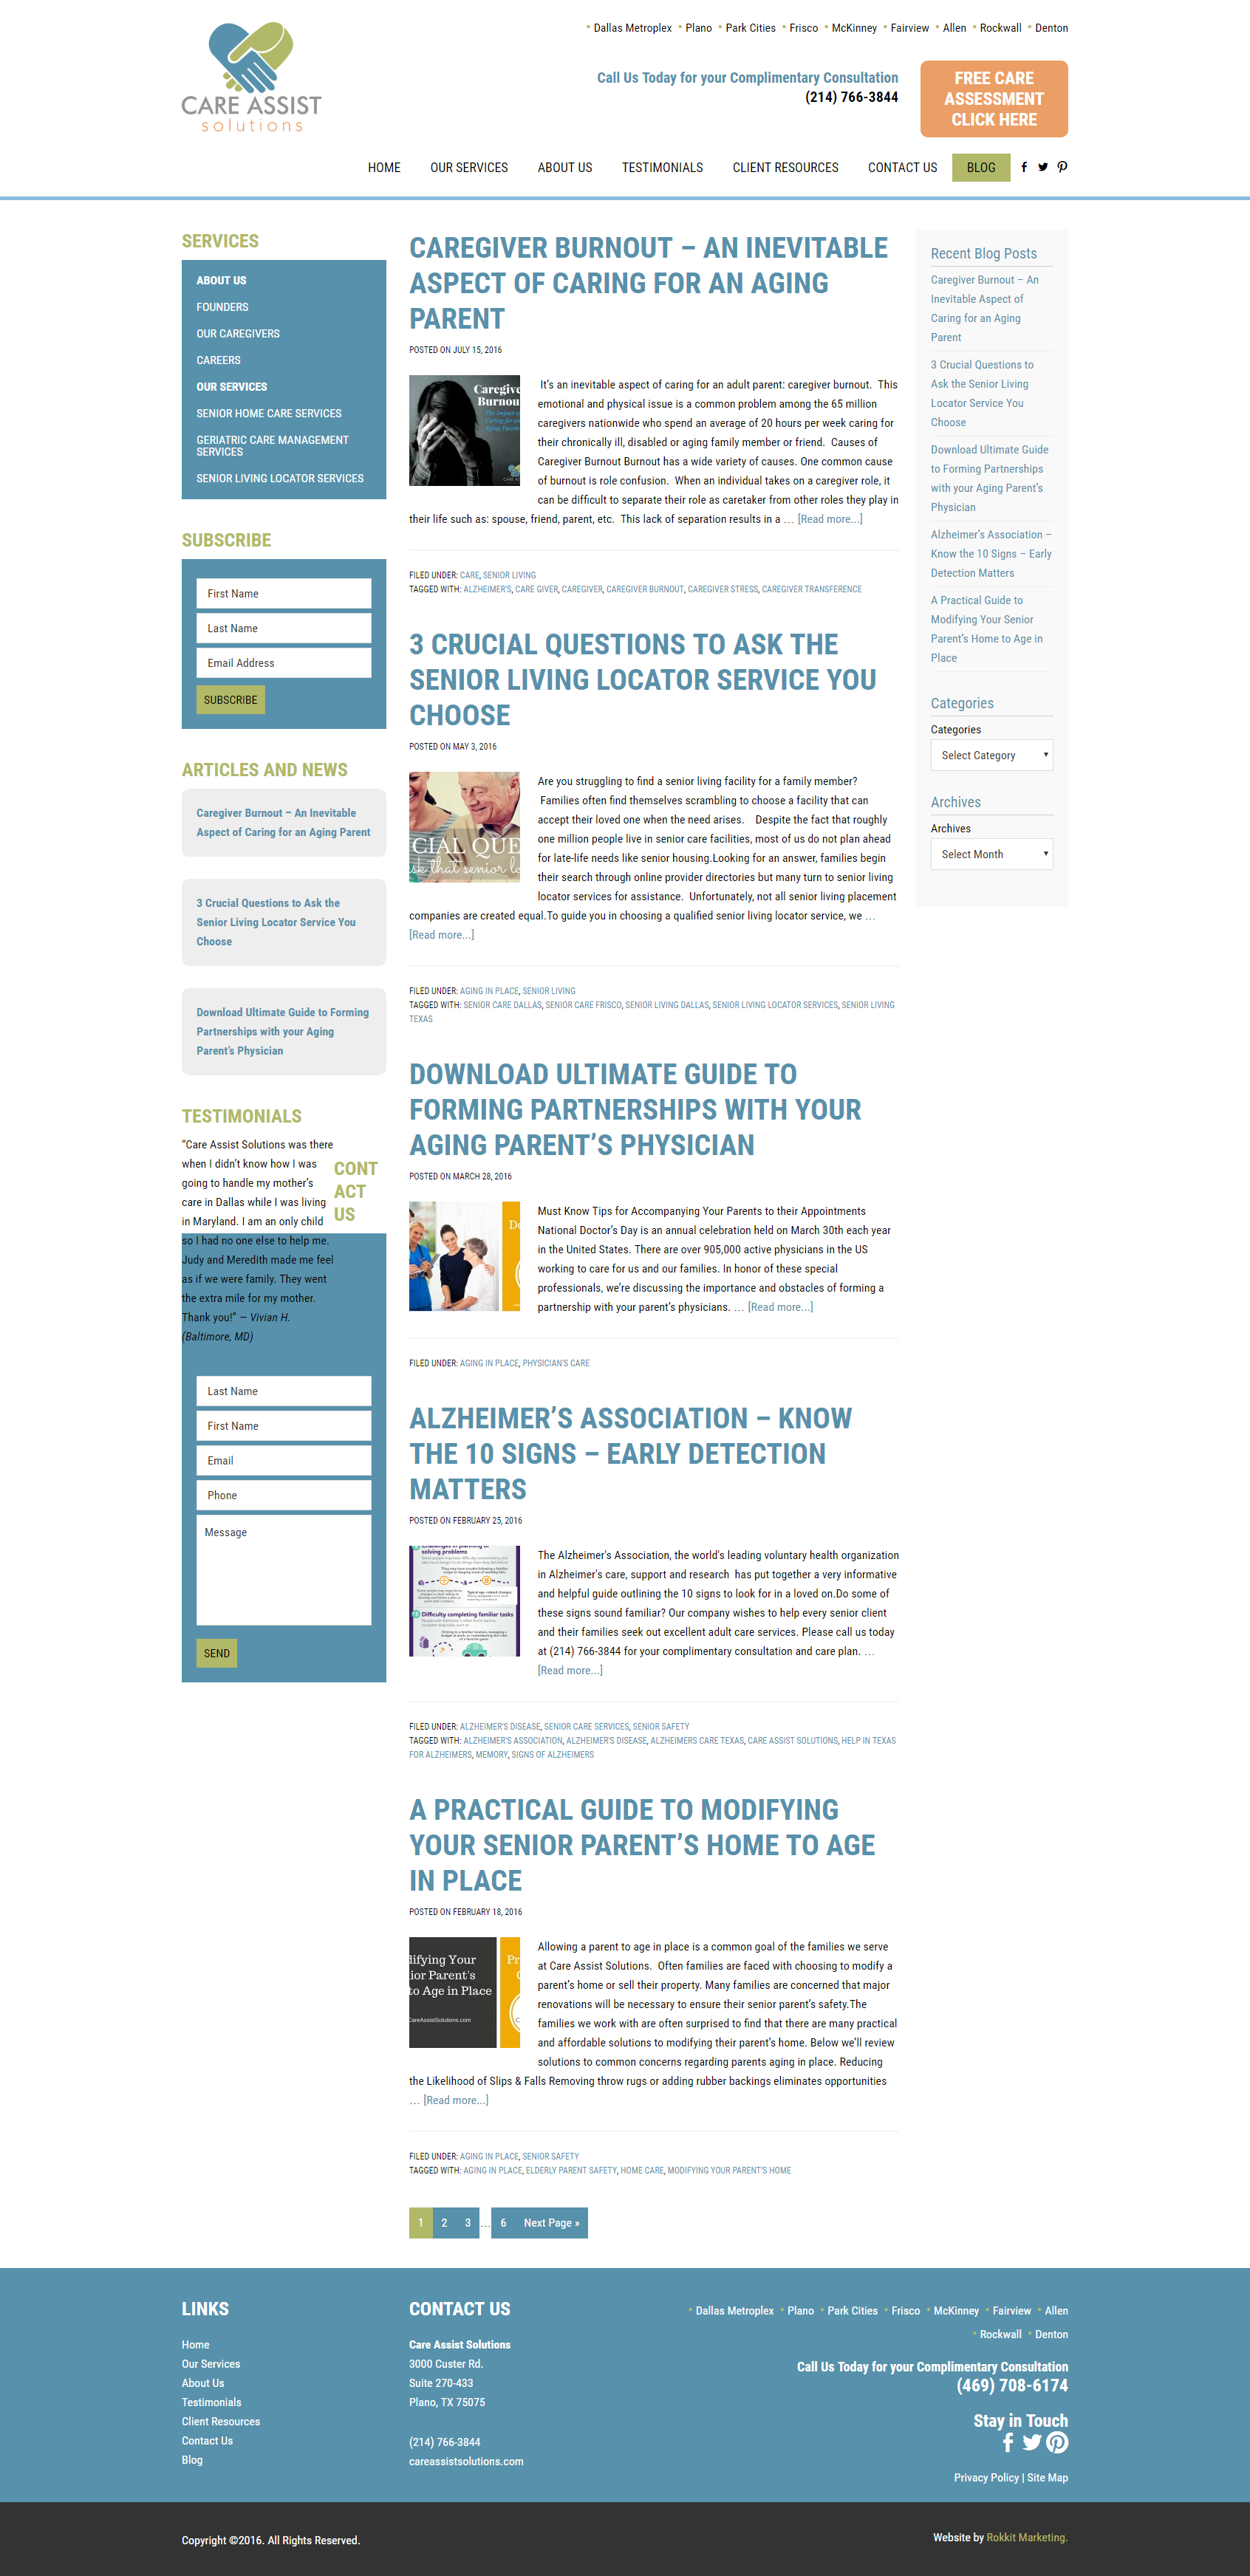 Care Assist Resources